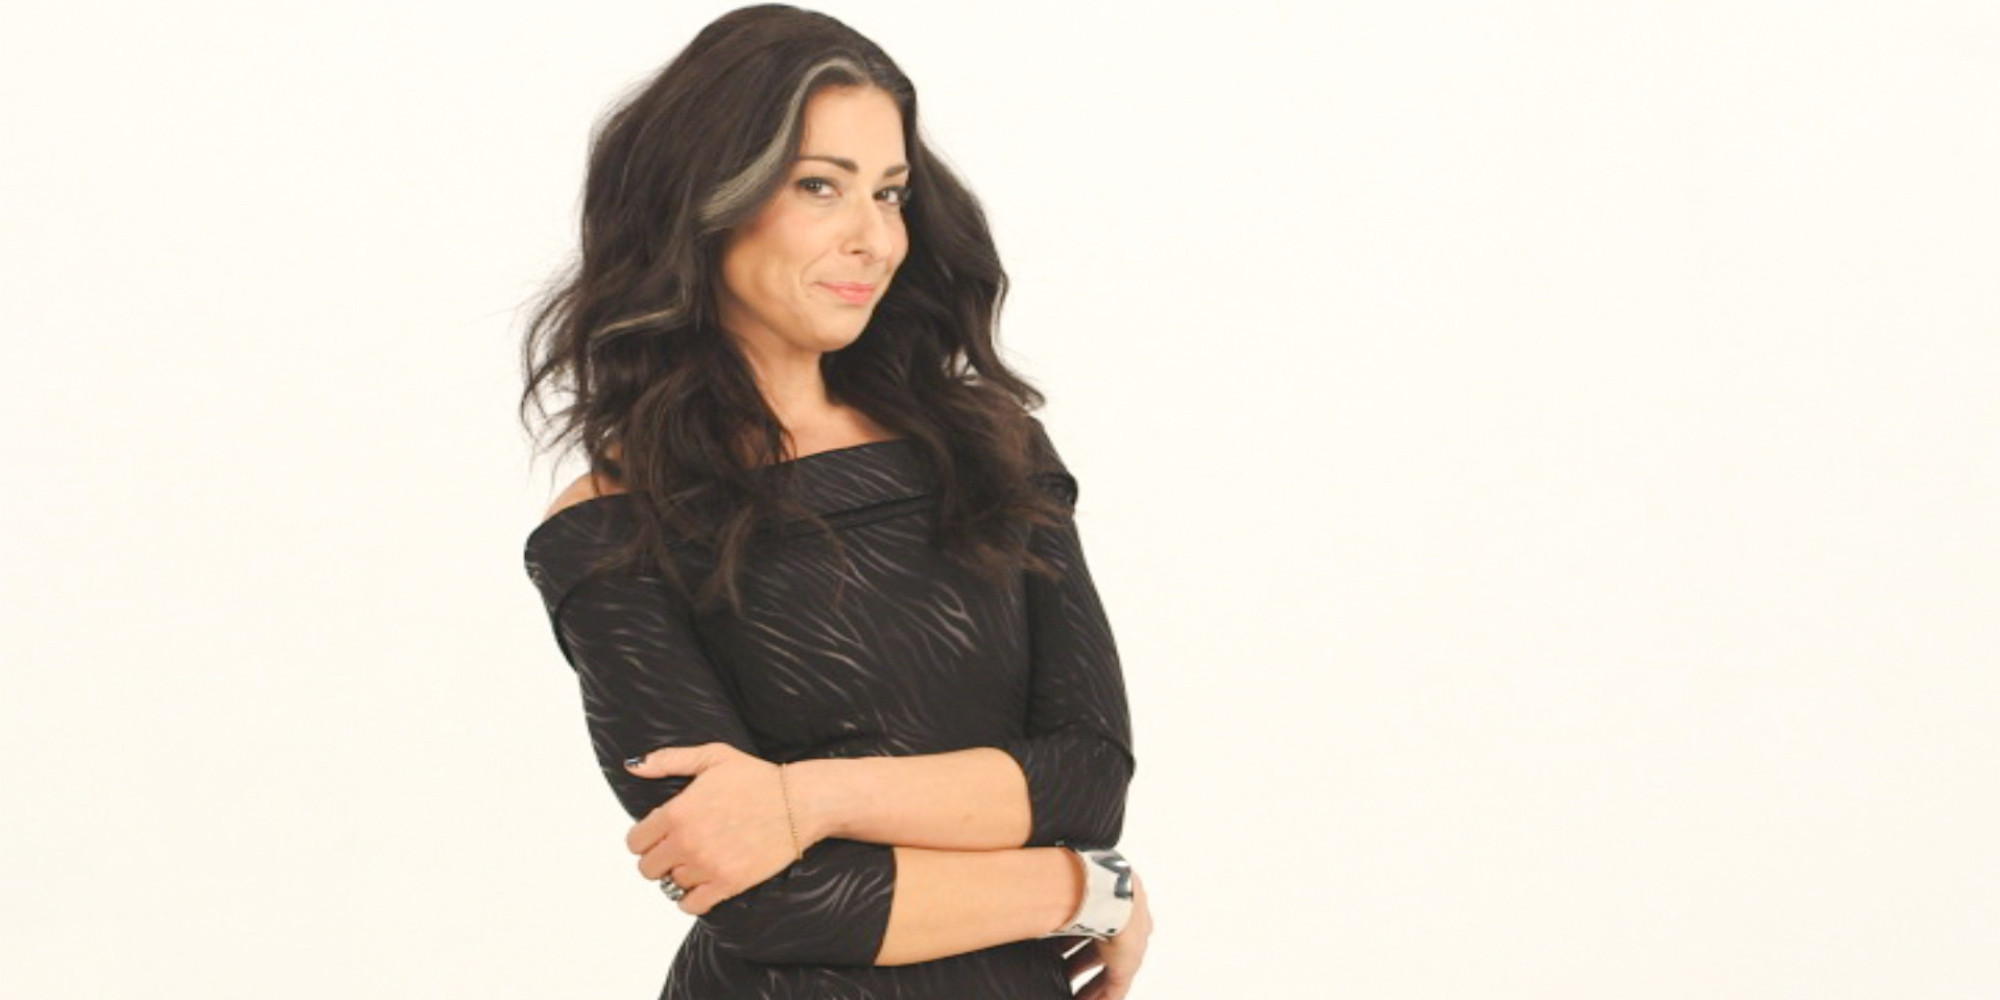 Fashionably late with stacy london 72